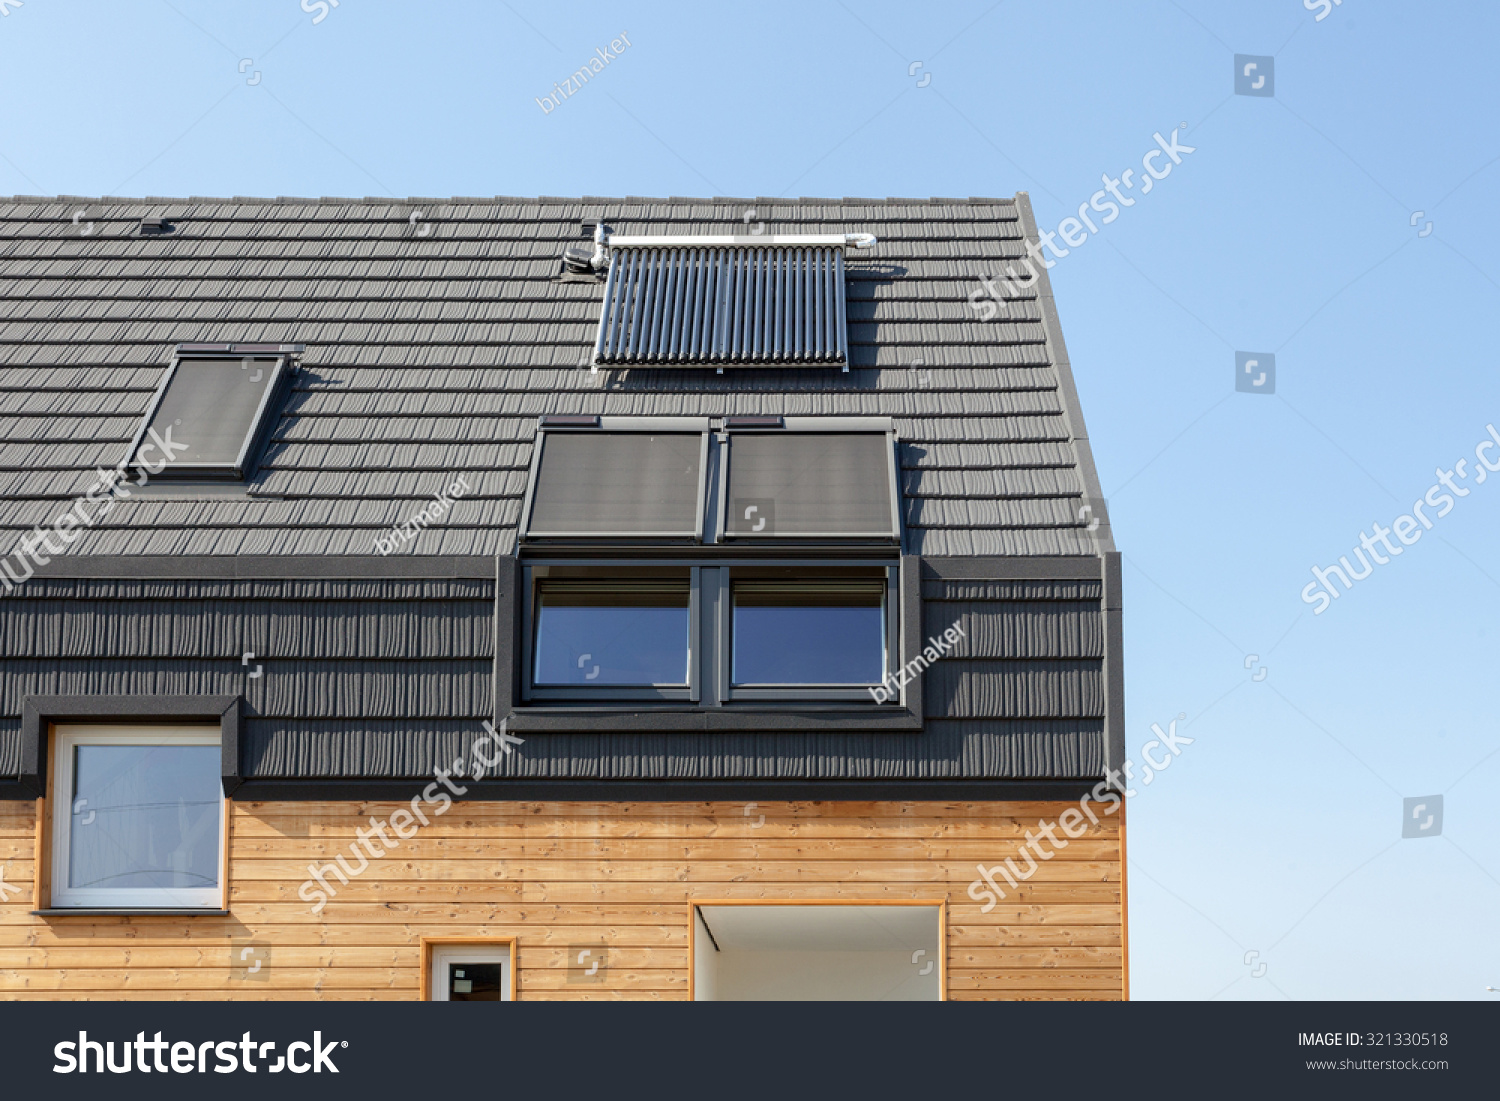 Energy saving concepts new building energy stock photo for Efficient roofing